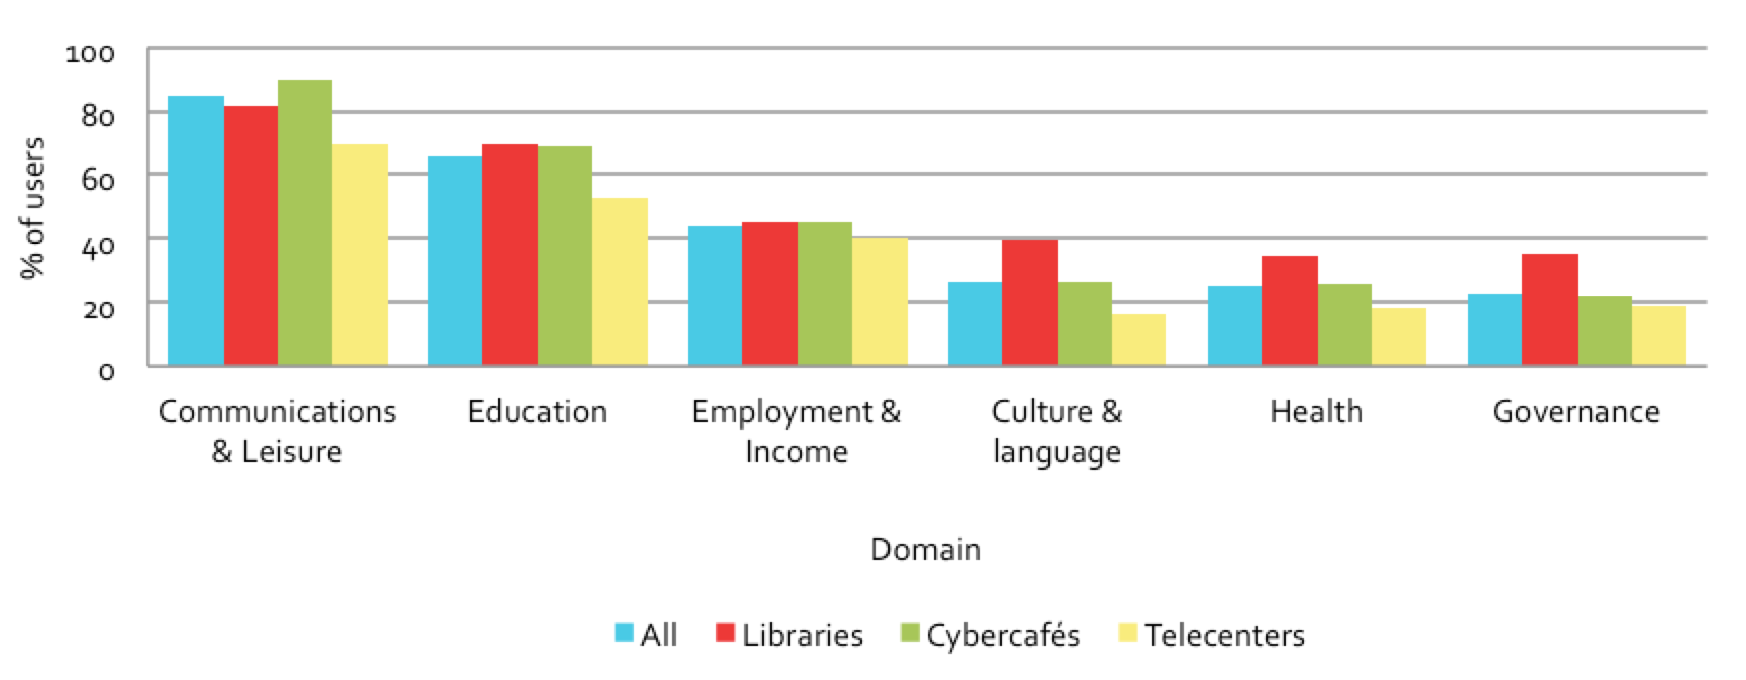 Figure 7.2: Use of domains, by venue